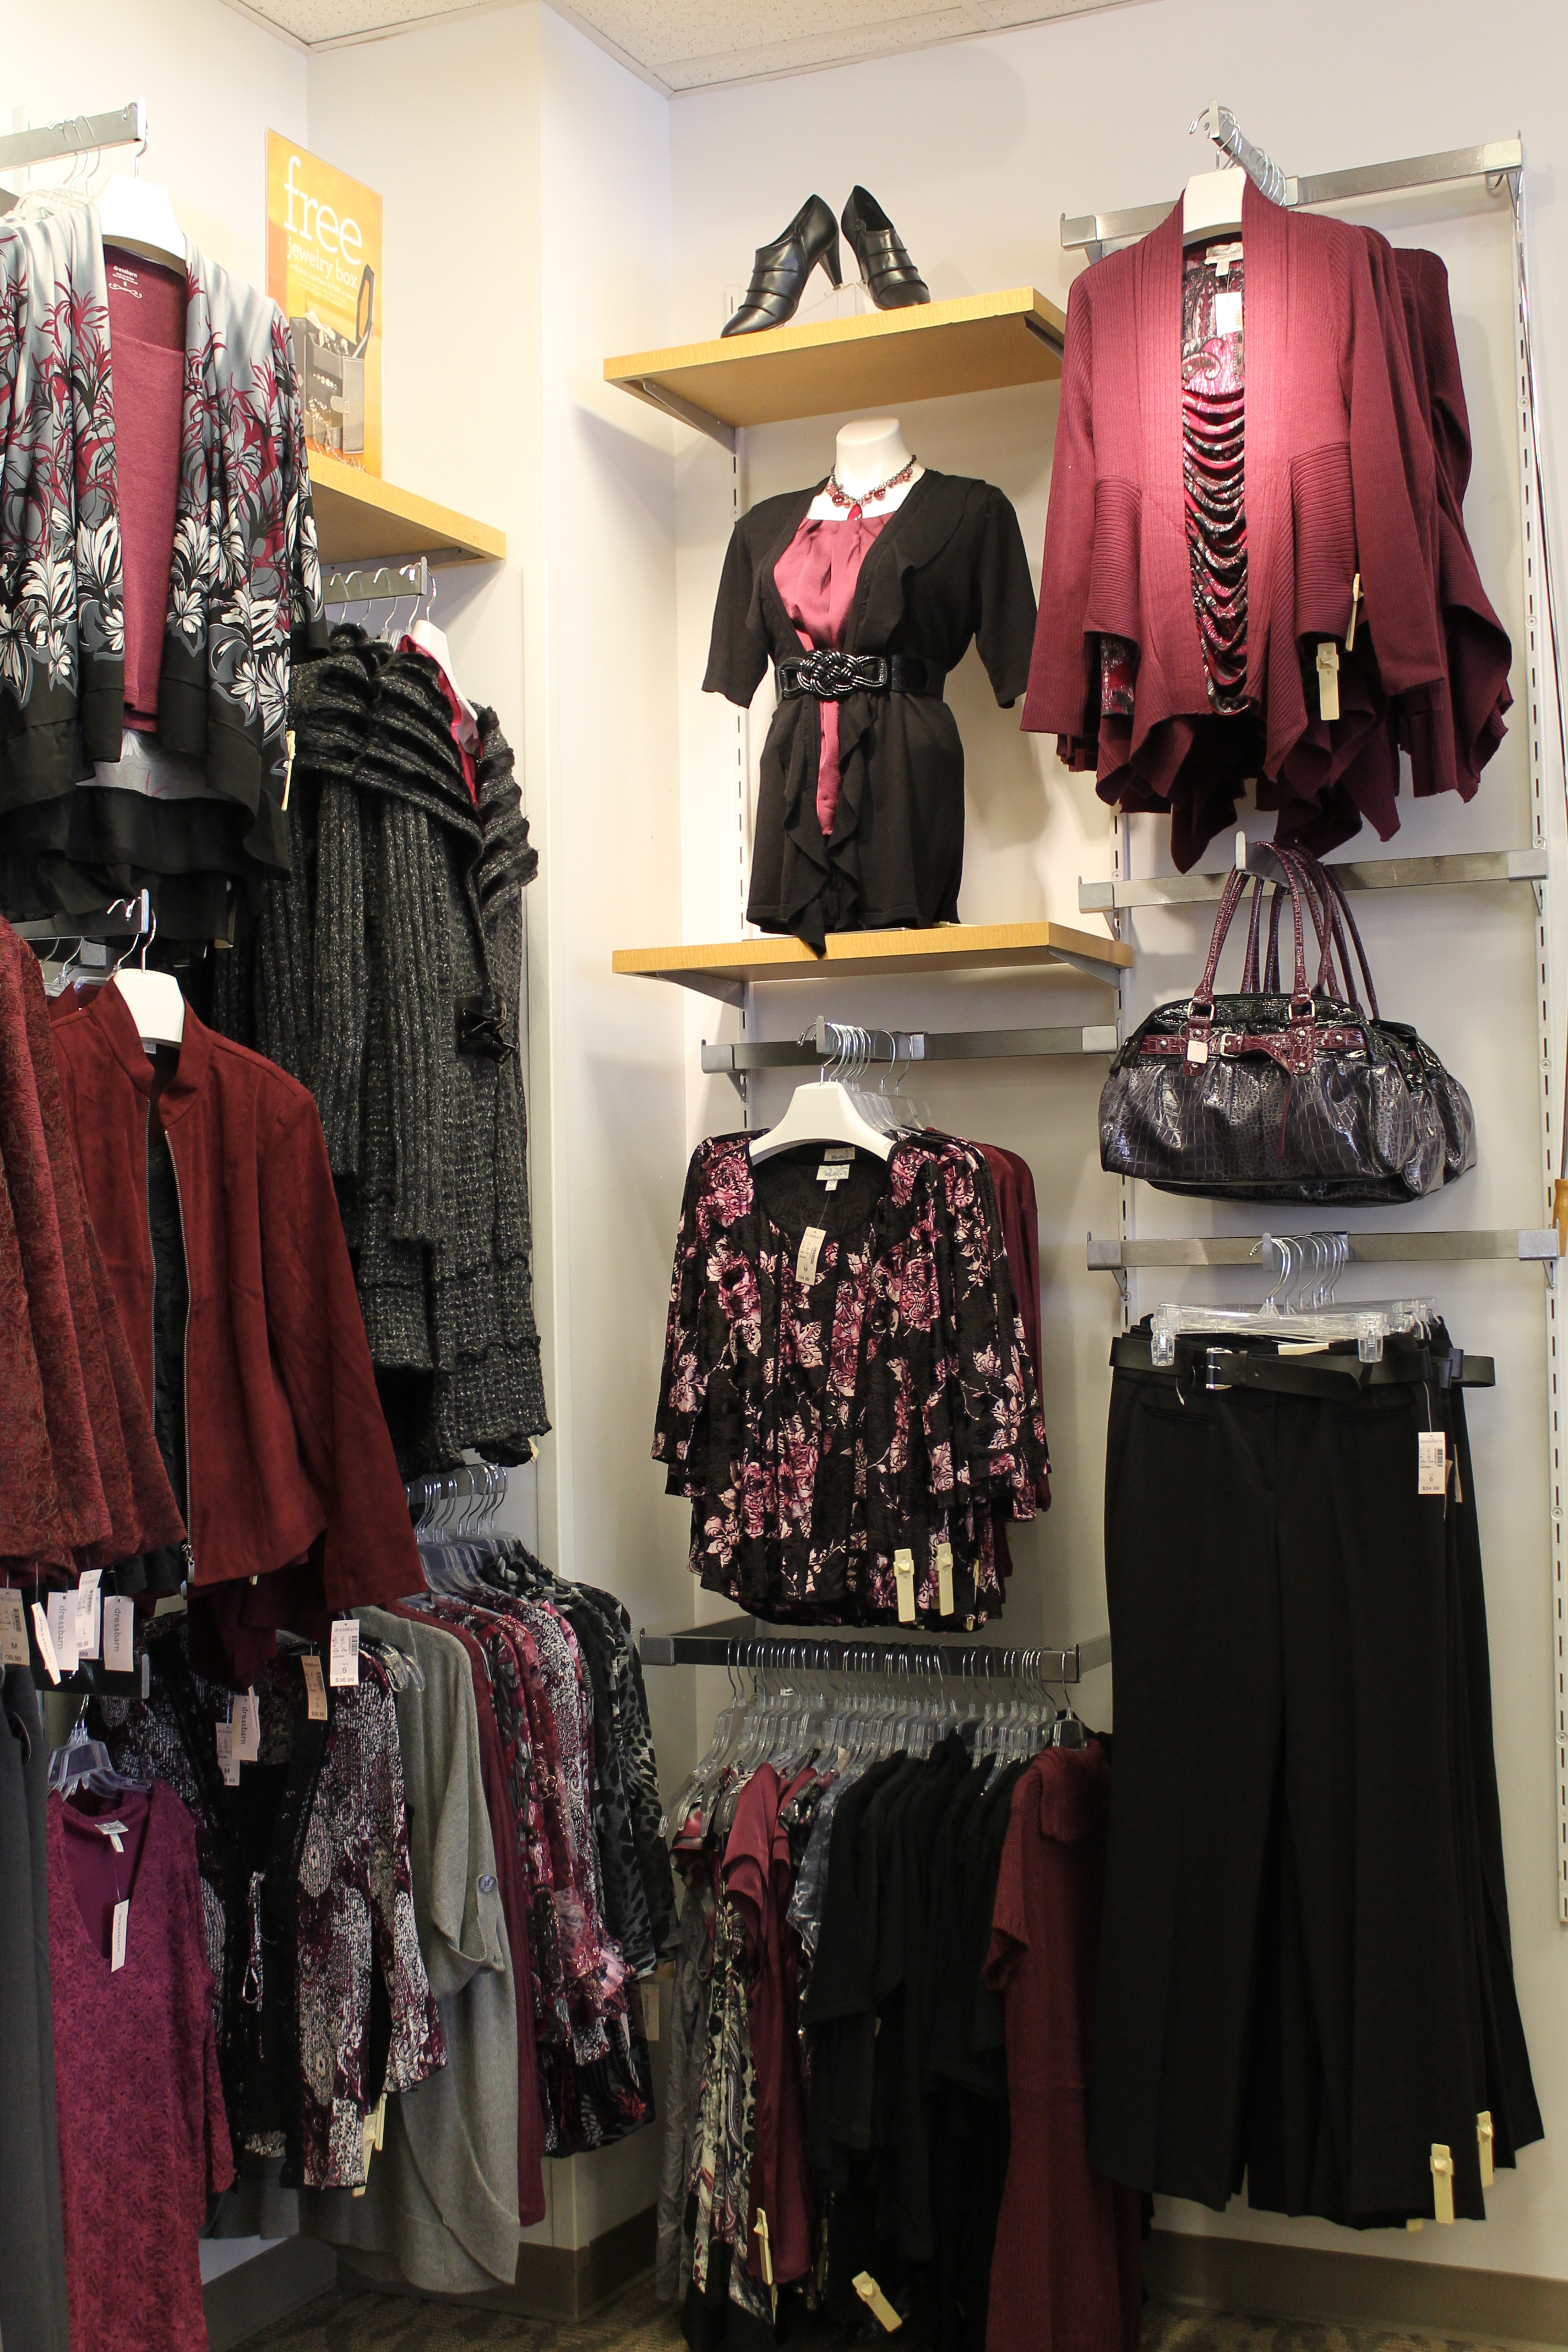 dress ashley her courtesy barns launched on s graham zoom news march grahams barn first for see by stylish dressbarn clothing beyond collection